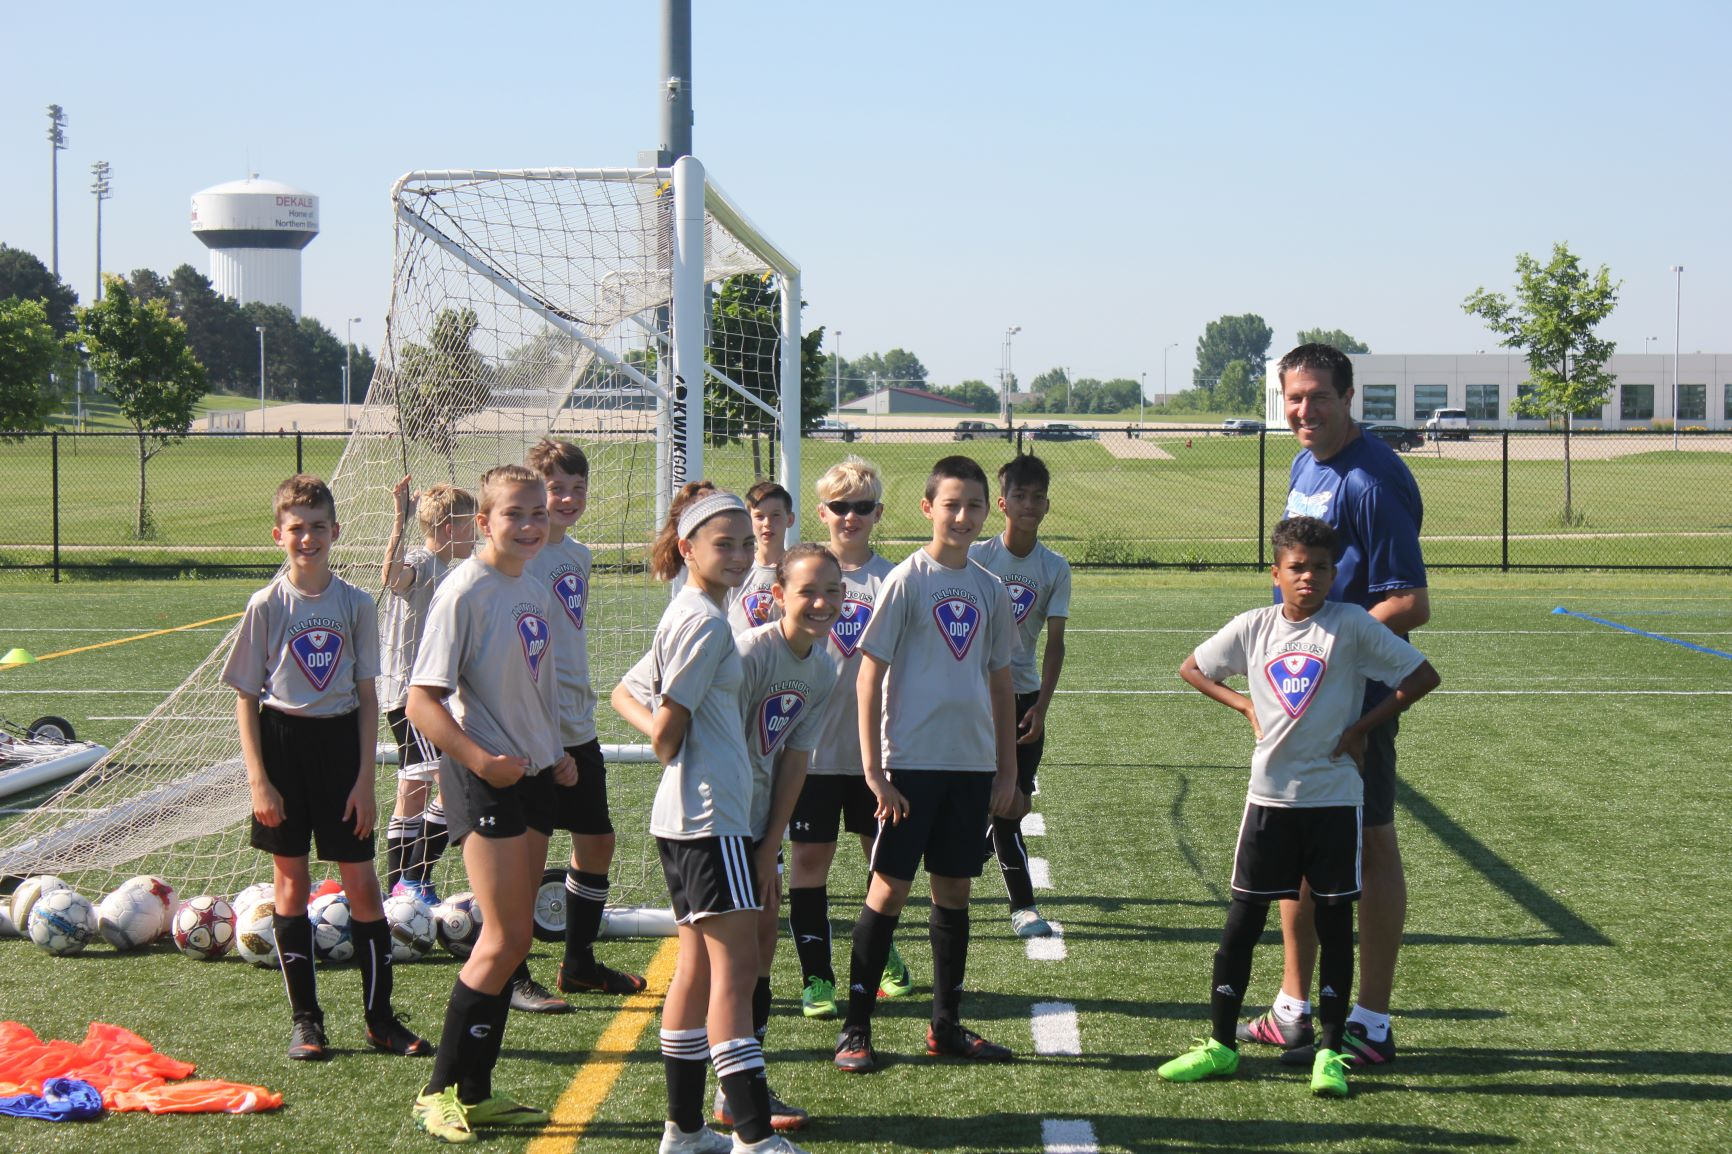 2019 SUMMER ODP CAMP REGISTRATION NOW OPEN!